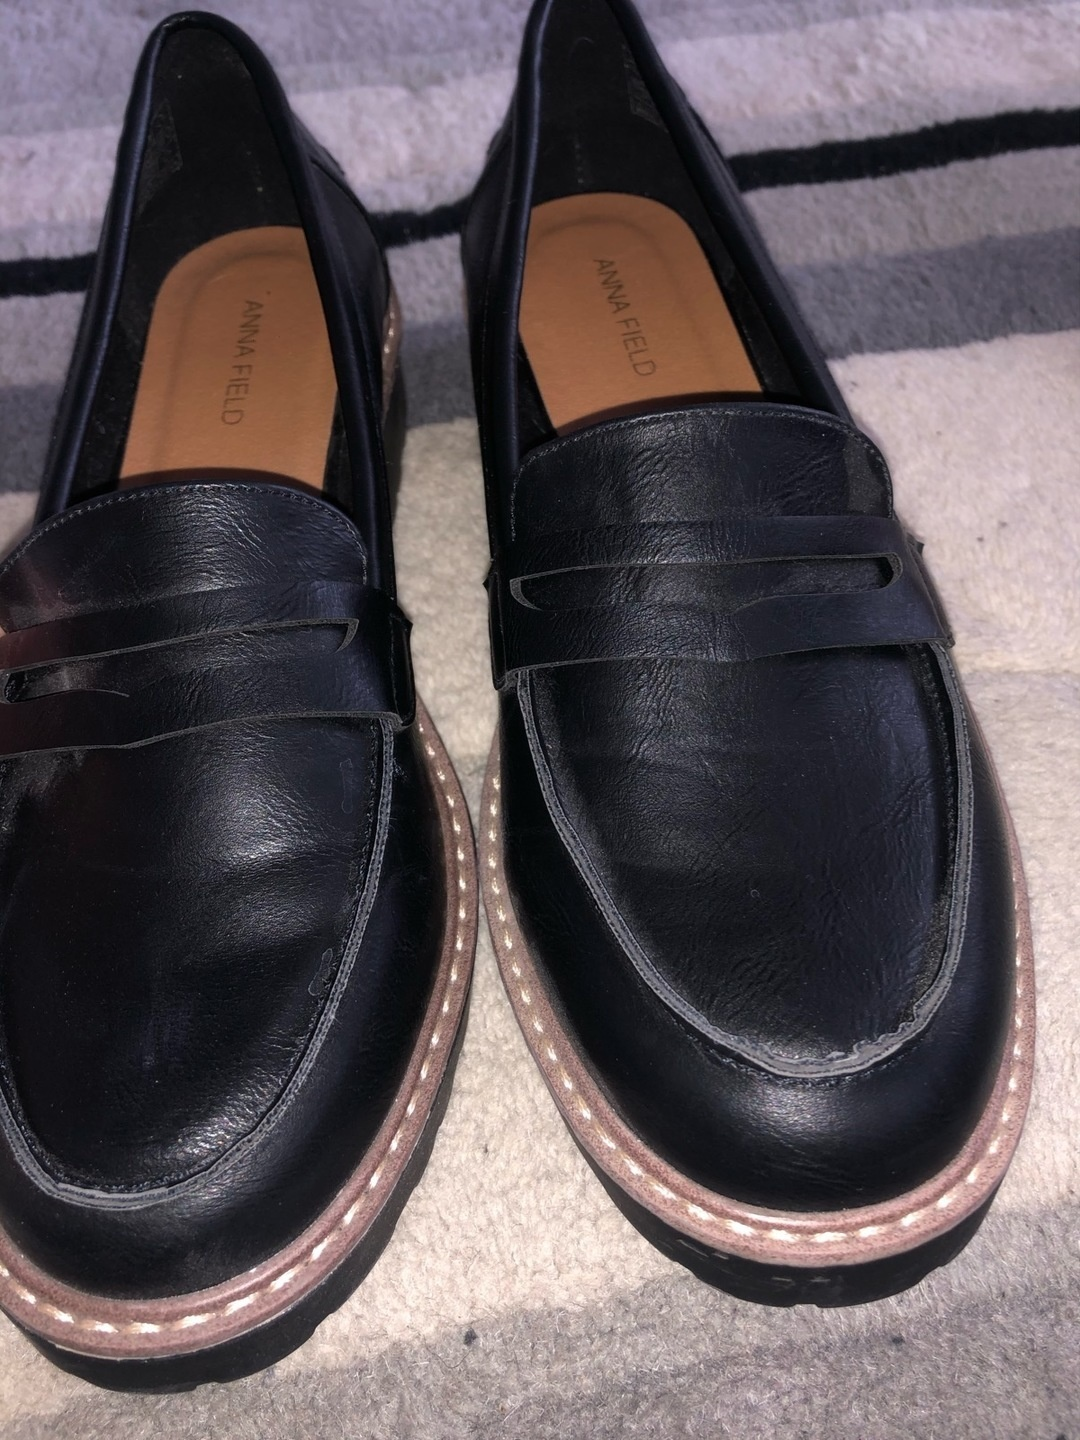 Women's flats & loafers - ANNA FIELD photo 1